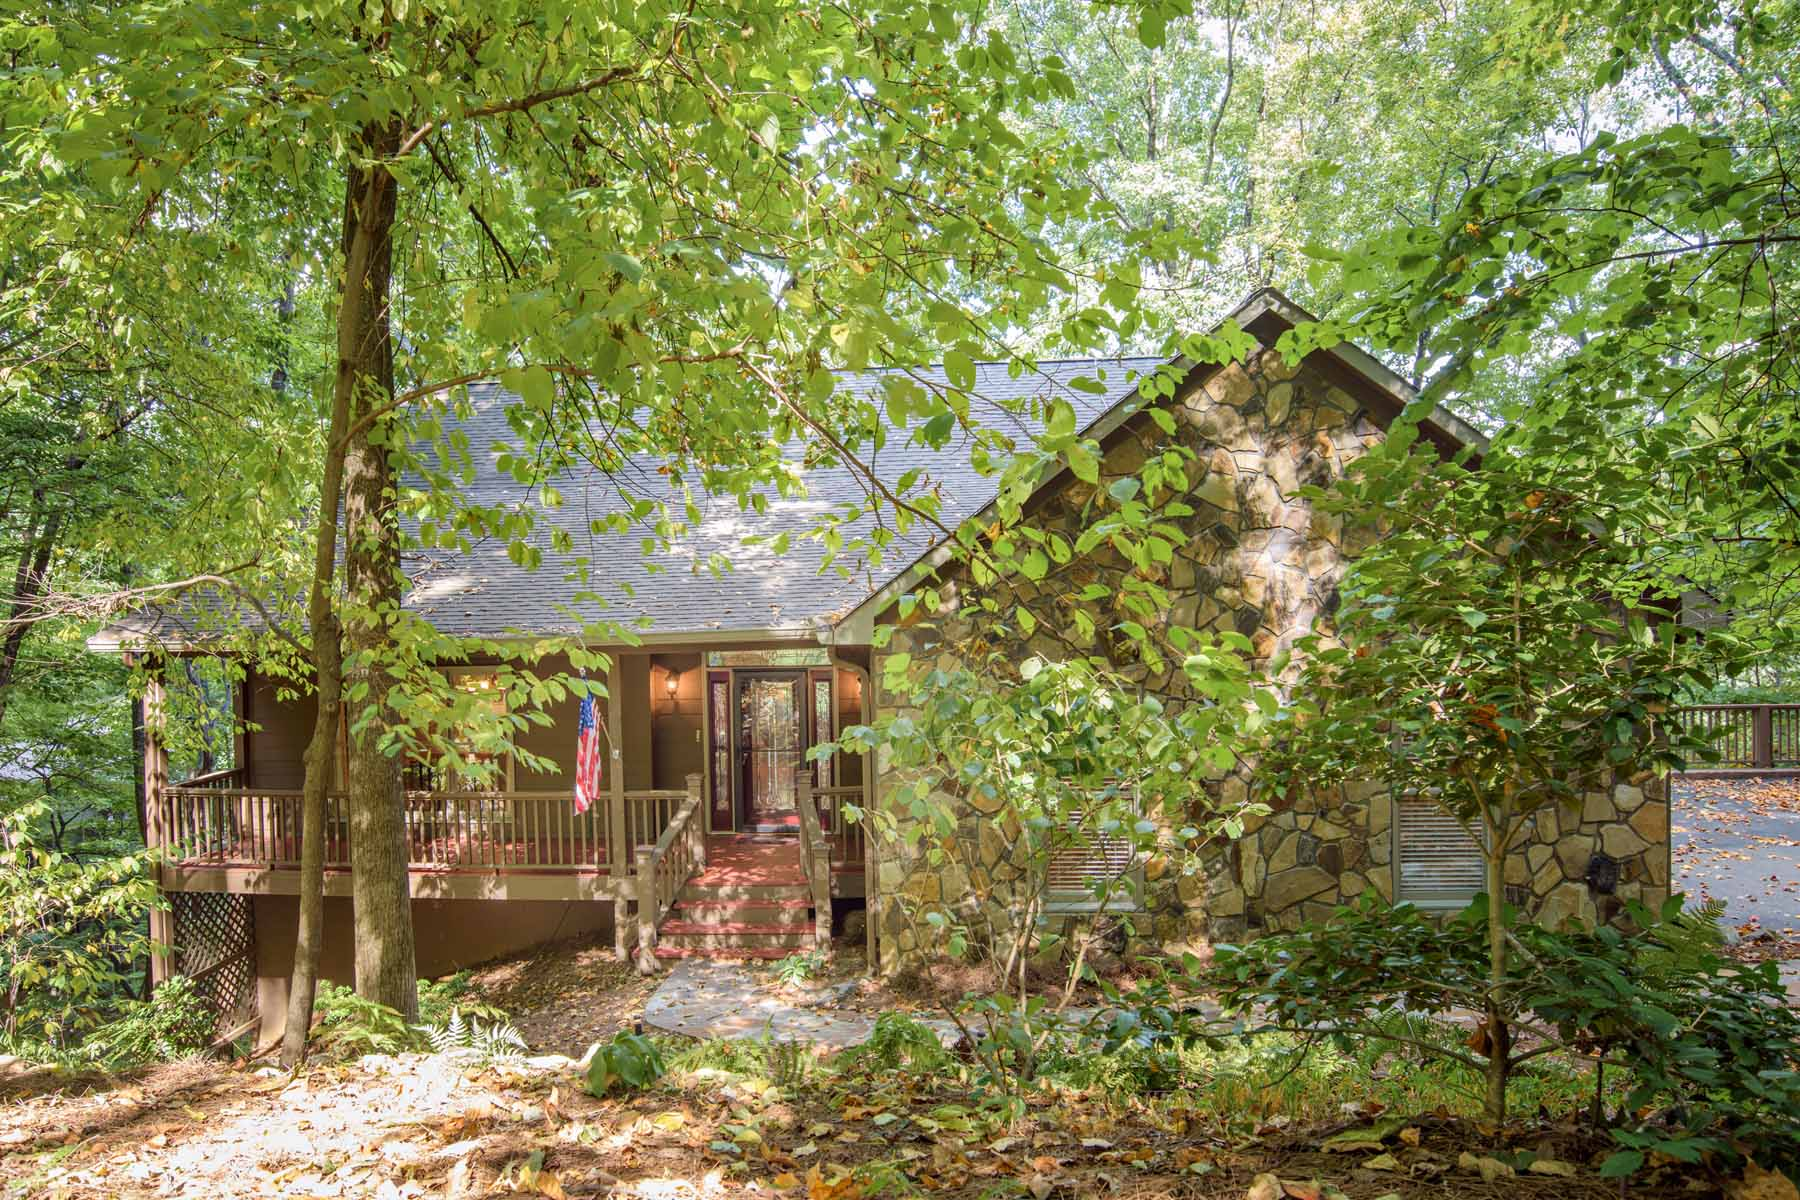 Single Family Home for Sale at Horshoe Pit with Home and Mountain View 367 Hickory Trail Big Canoe, Georgia, 30143 United States